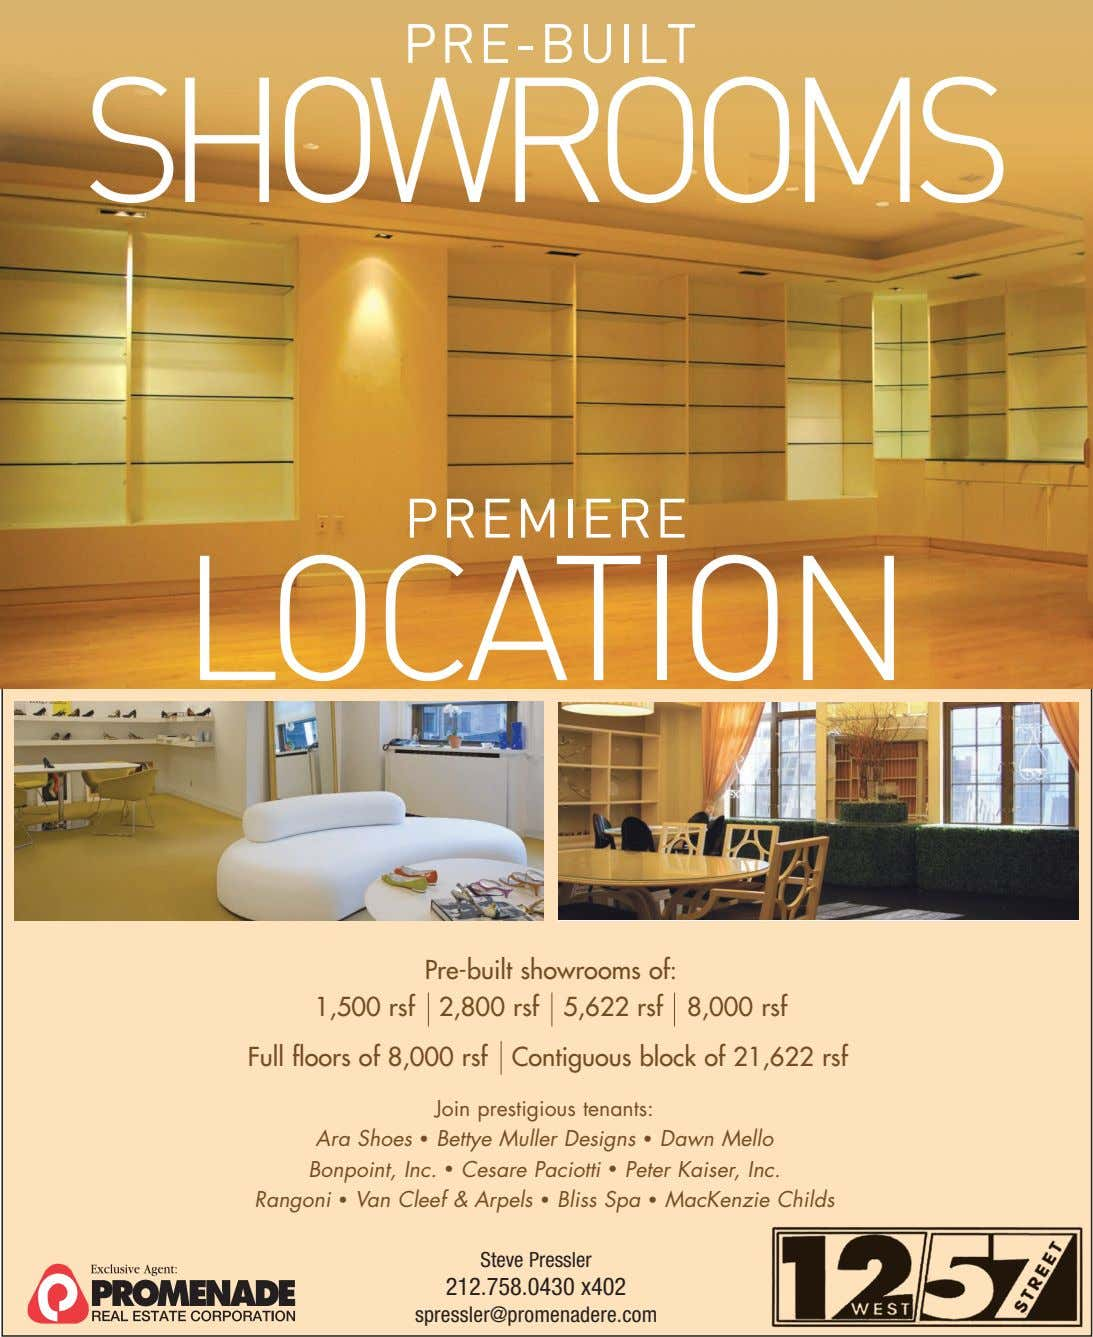 PRE-BUILT SHOWROOMS PREMIERE LOCATION Pre-built showrooms of: 1,500 rsf 2,800 rsf 5,622 rsf 8,000 rsf